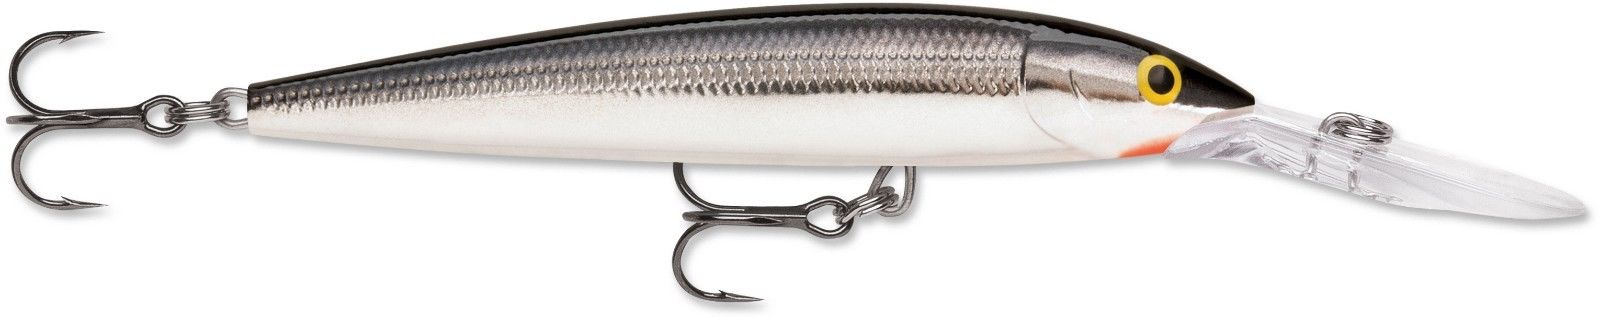 Rapala Down Deep Husky Jerk 10 Deep Diving Jerkbait